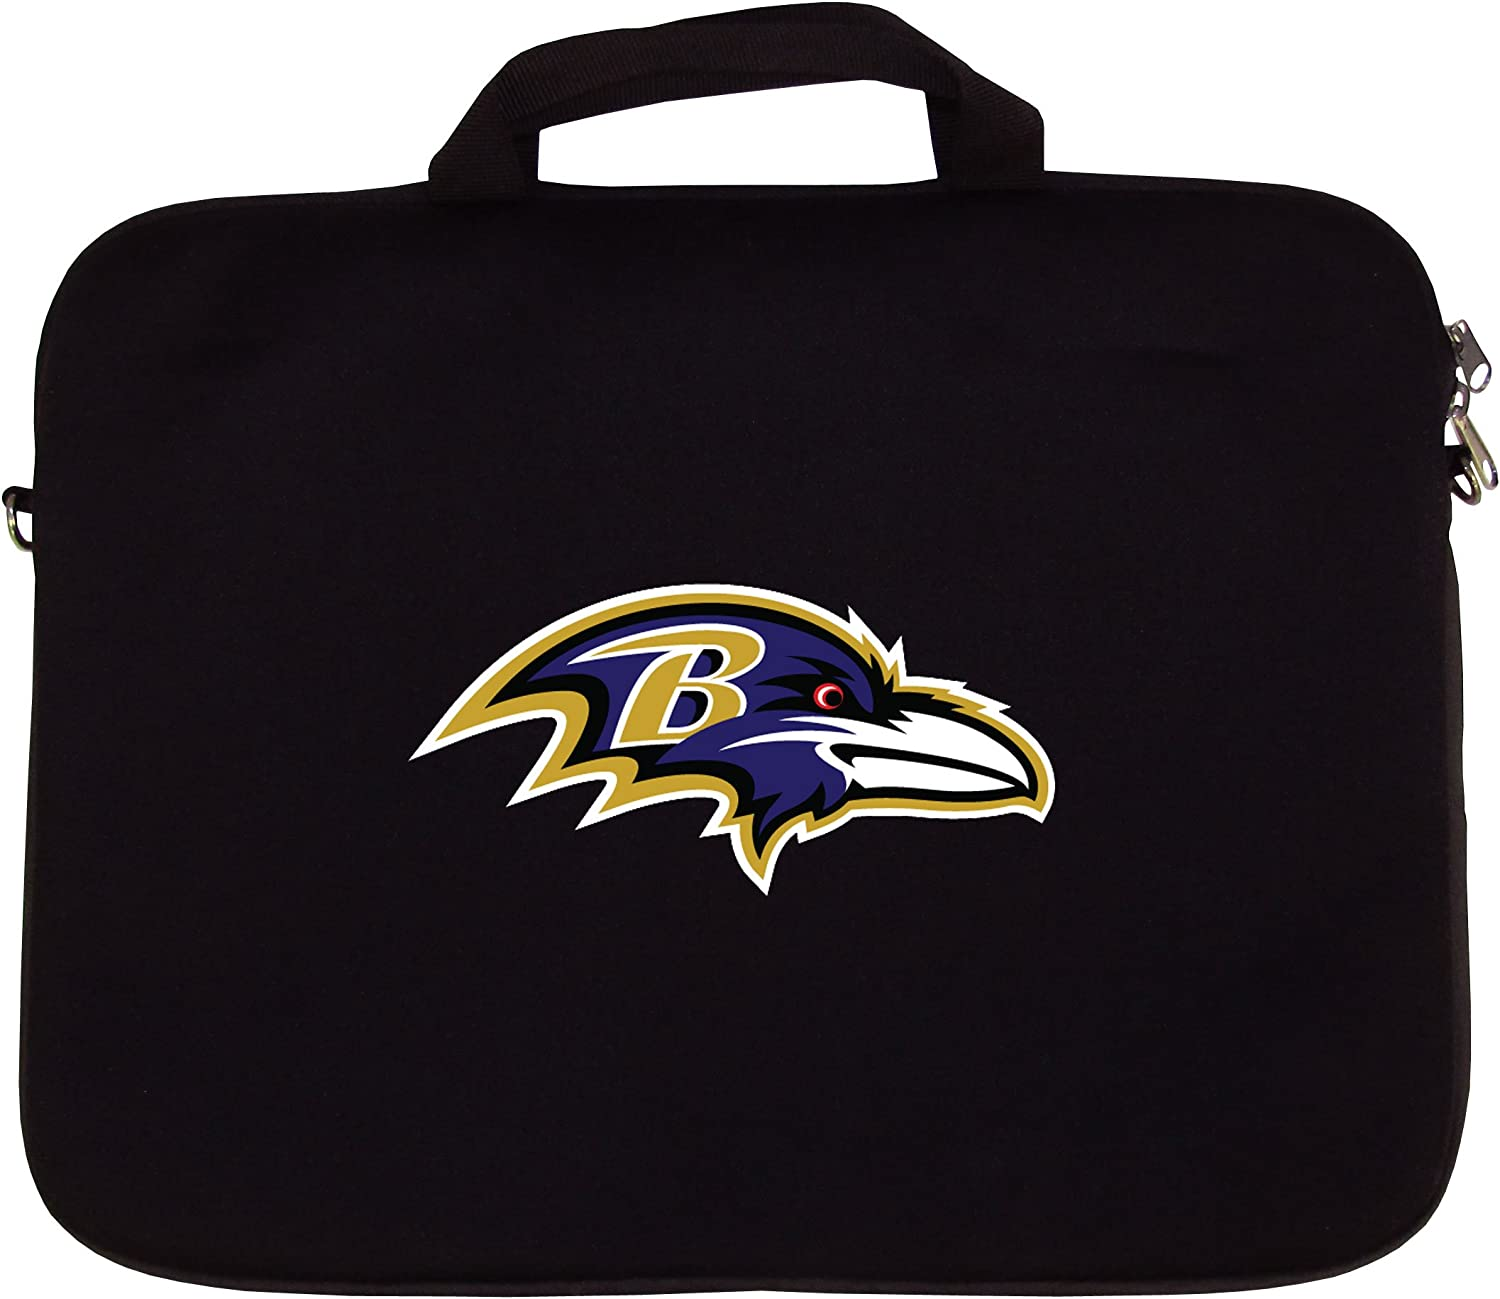 NFL Baltimore Ravens Laptop Bag